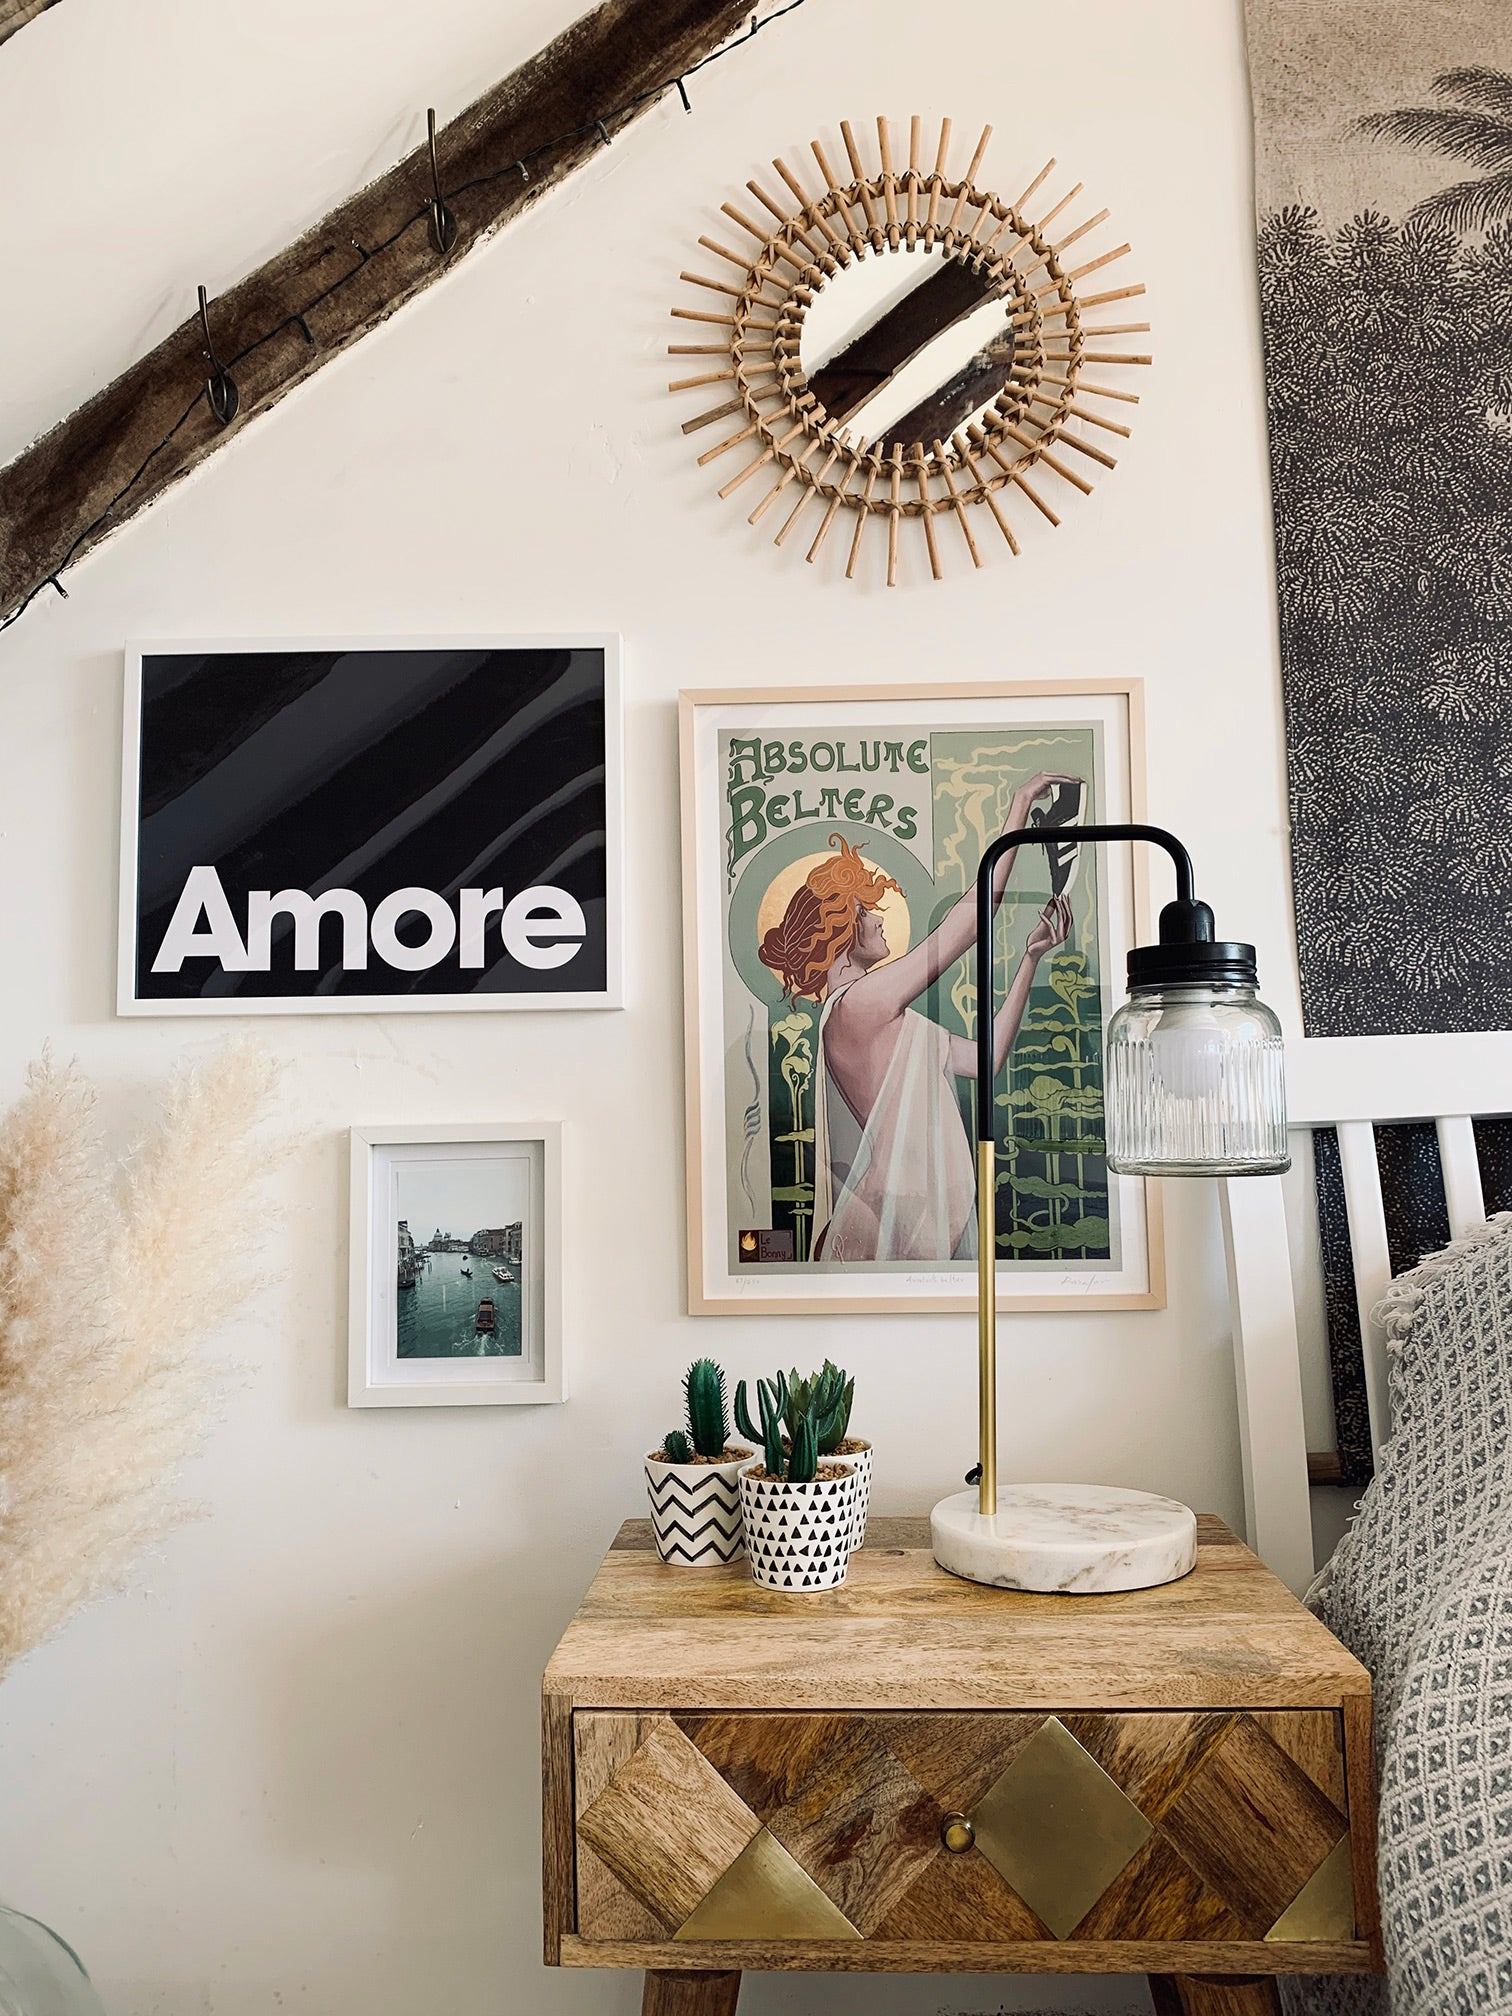 Bedside table, prints on wall, beamed ceiling